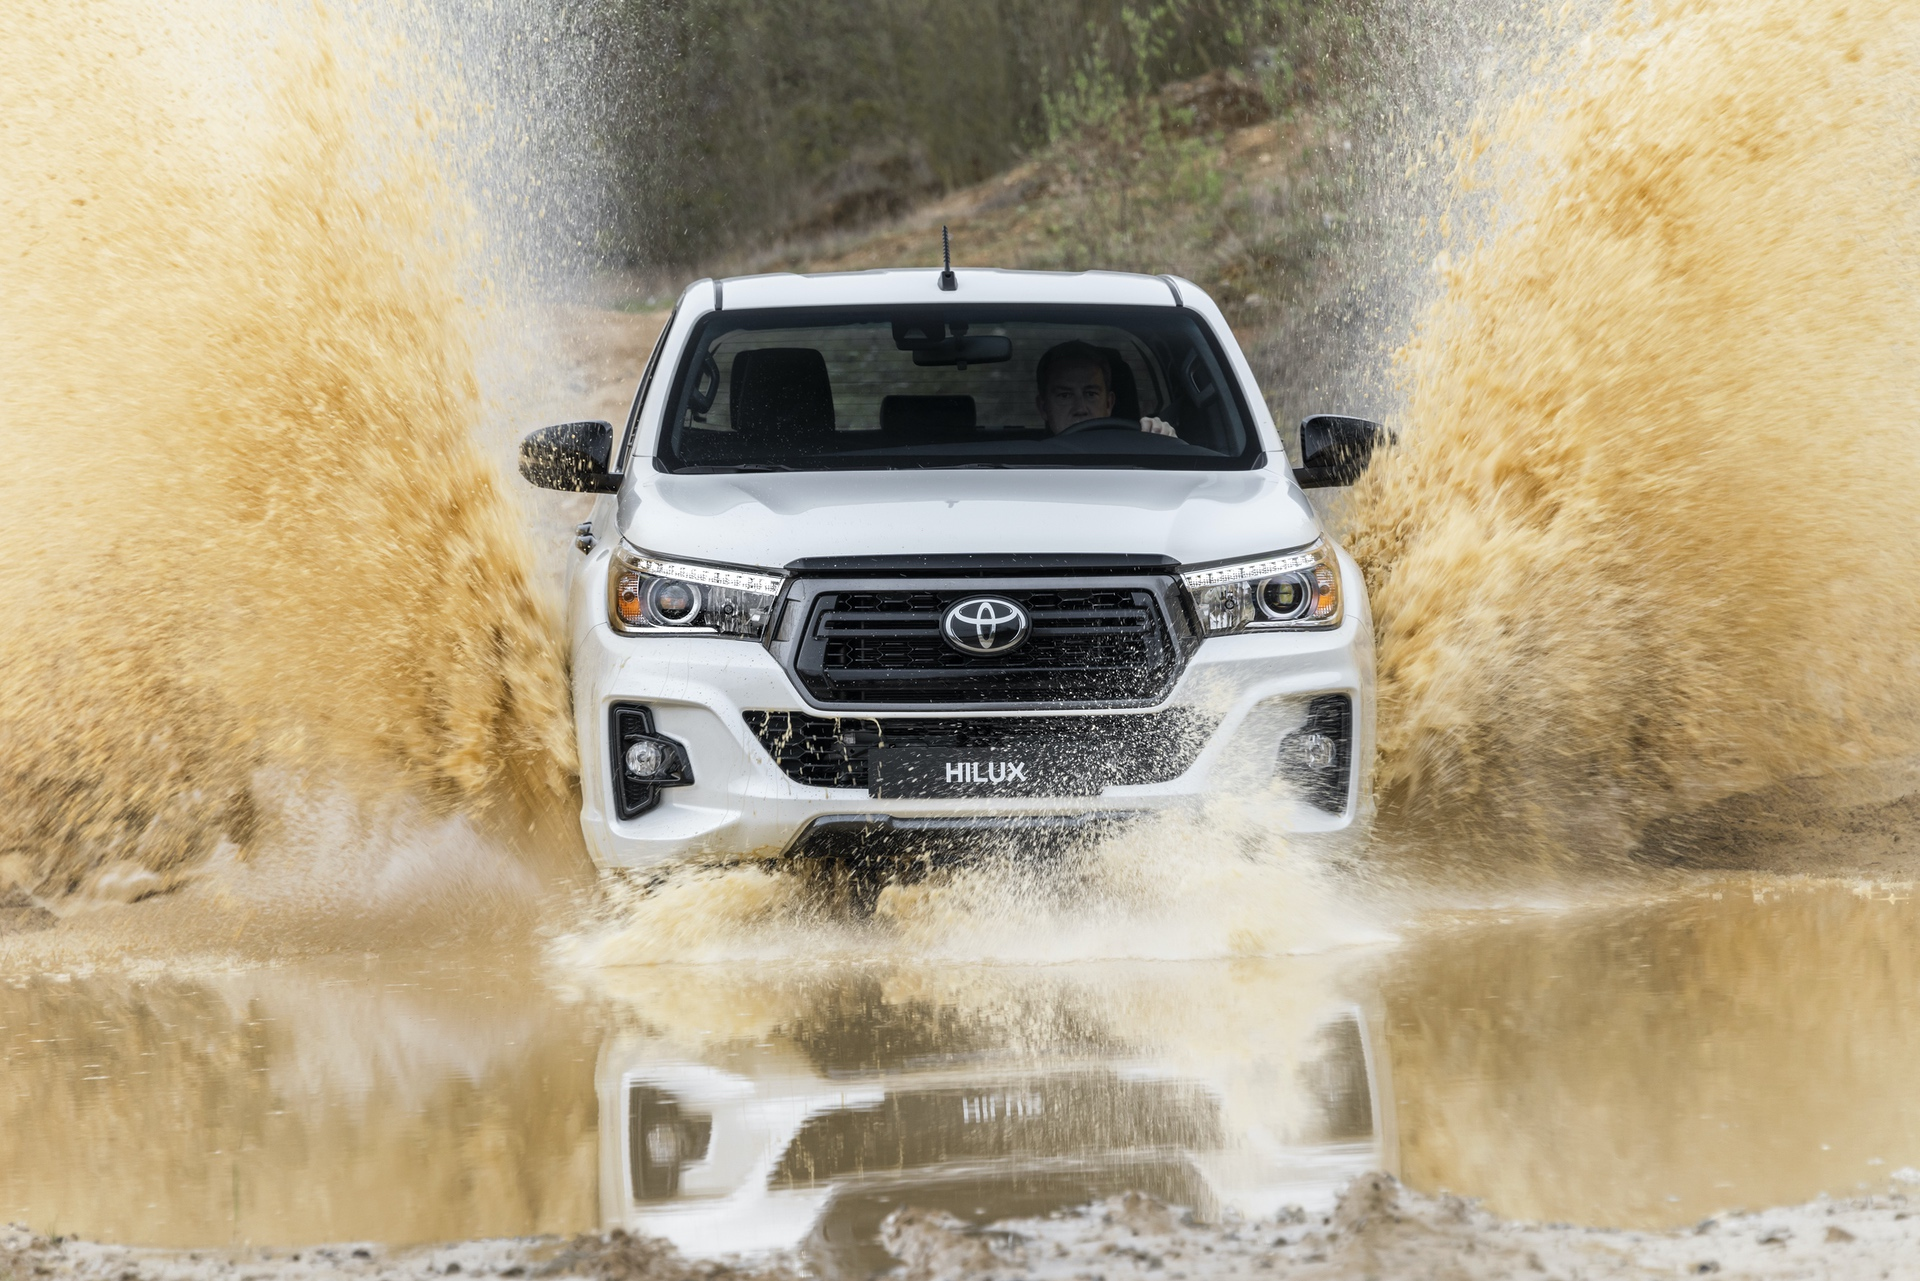 Toyota_Hilux_Special_Edition_0076